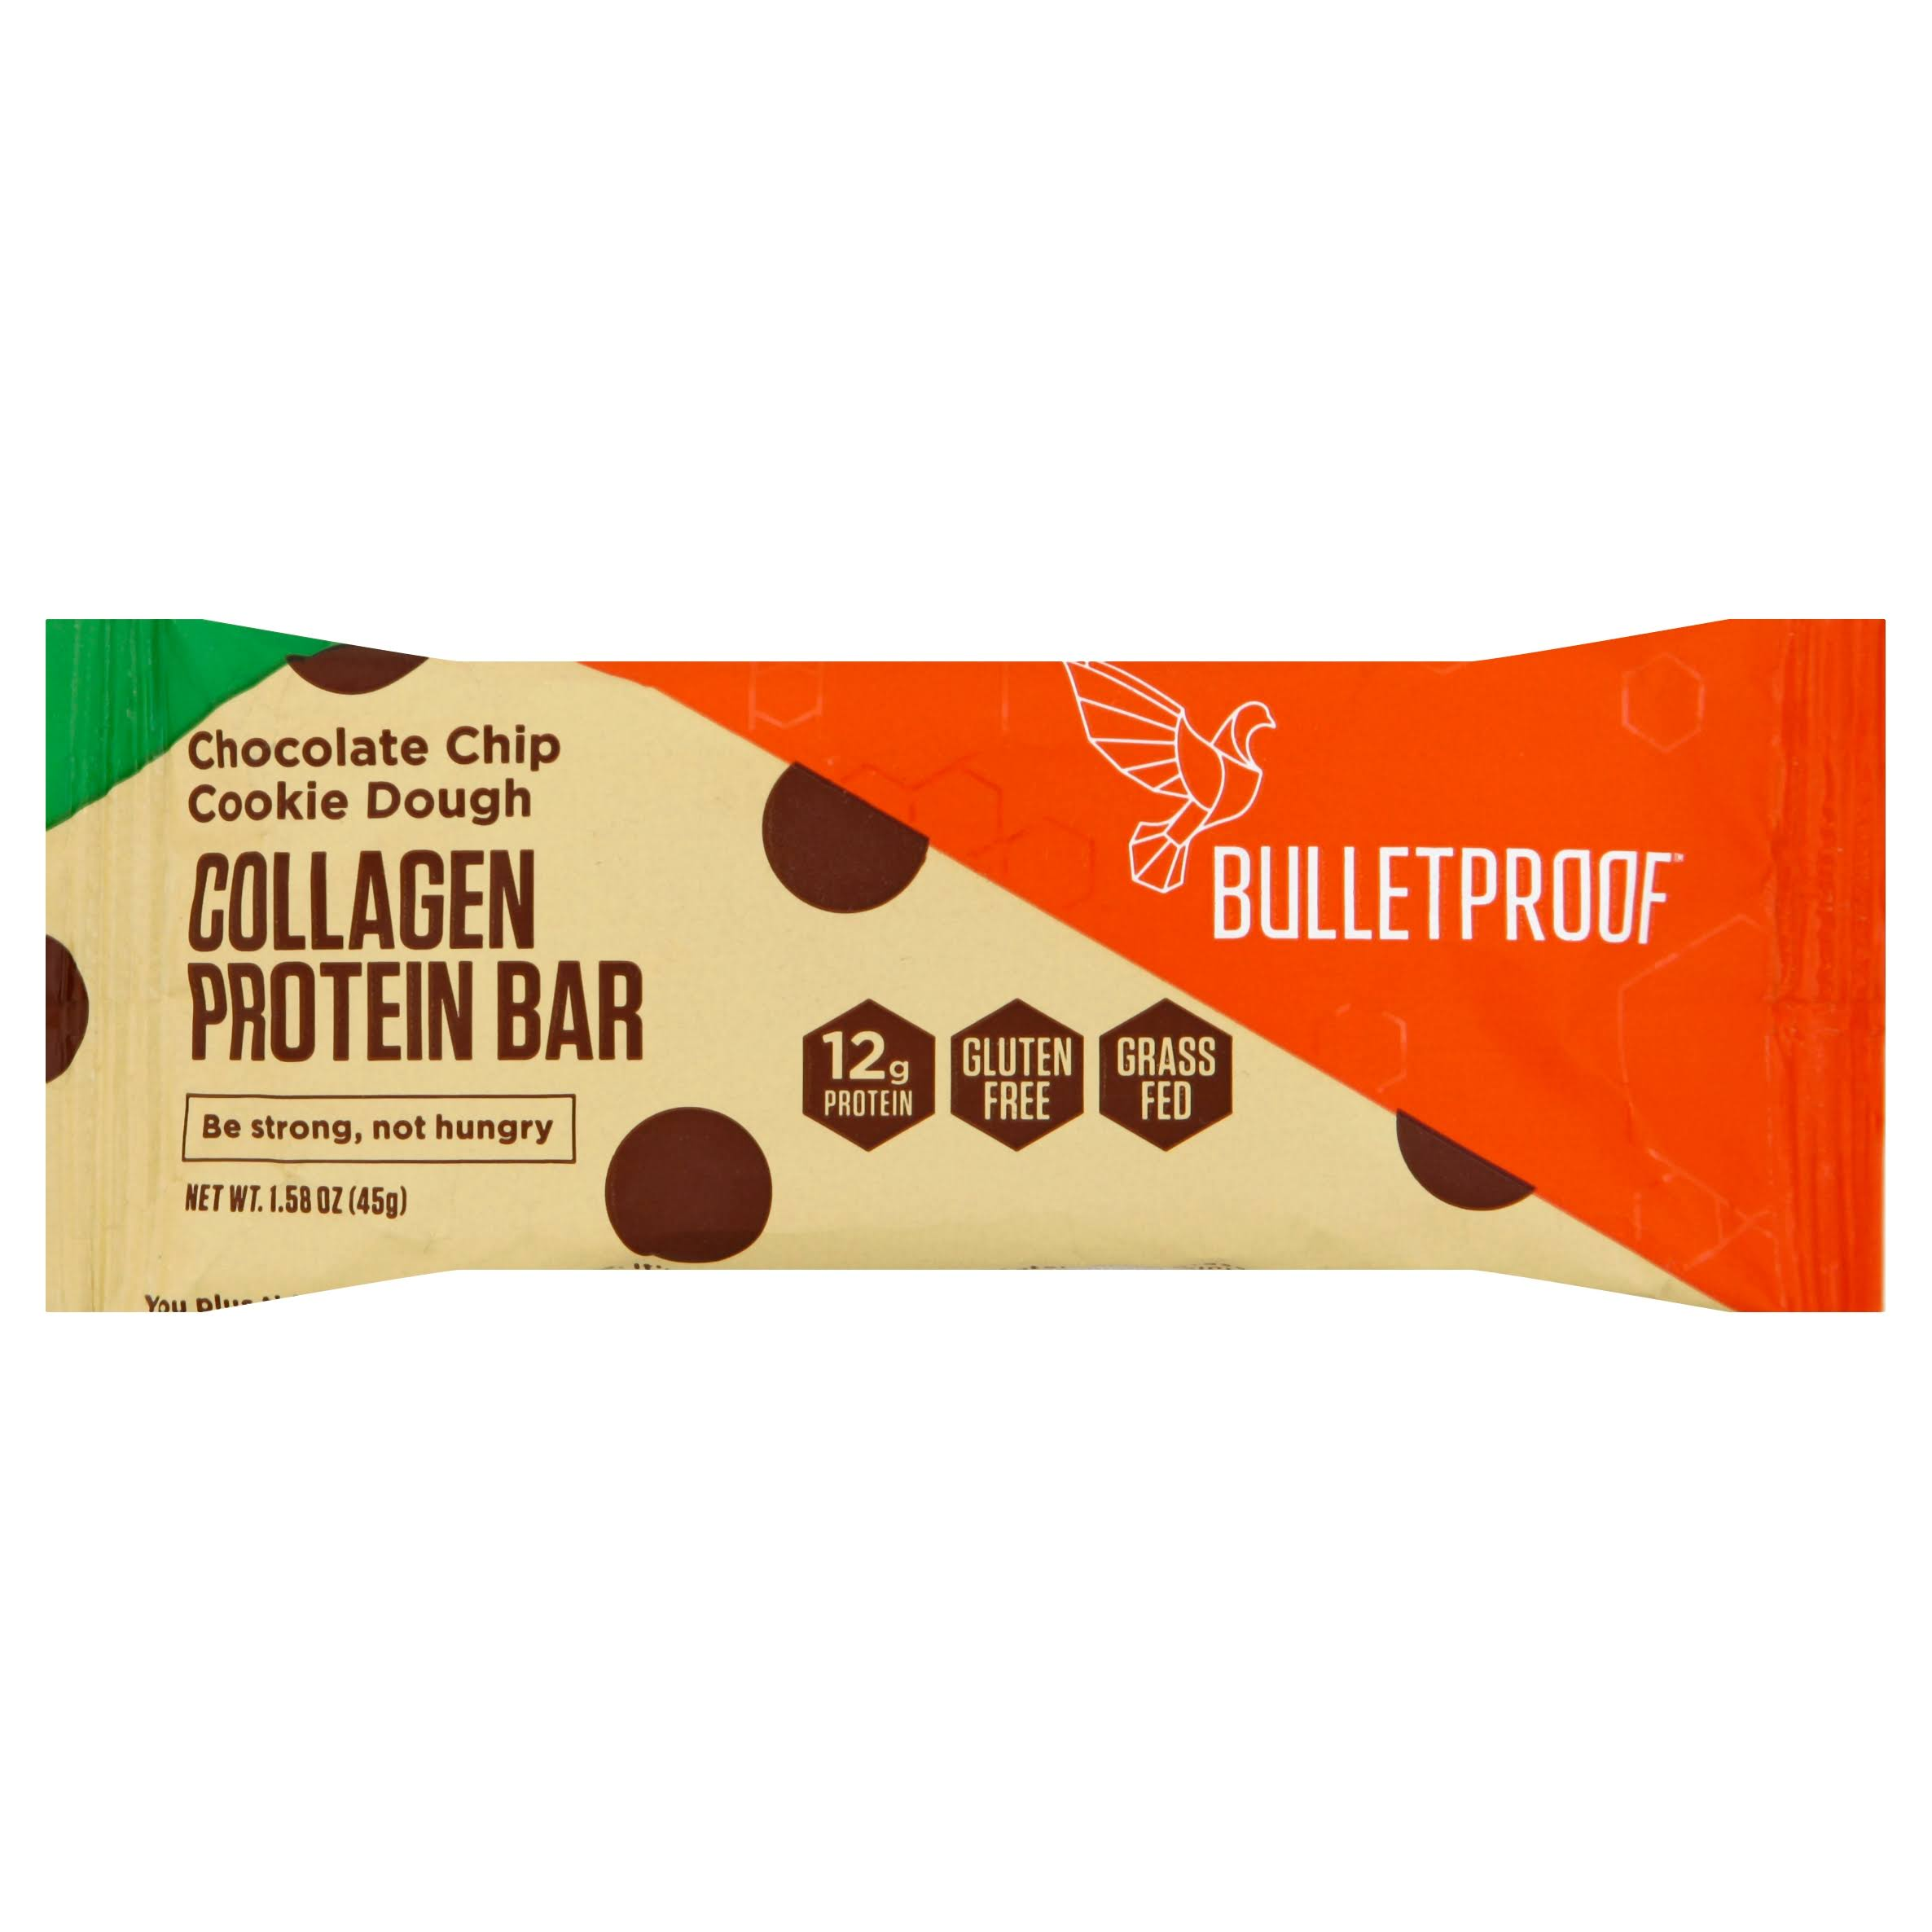 Bulletproof Protein Bar, Collagen, Chocolate Chip Cookie Dough - 1.58 oz